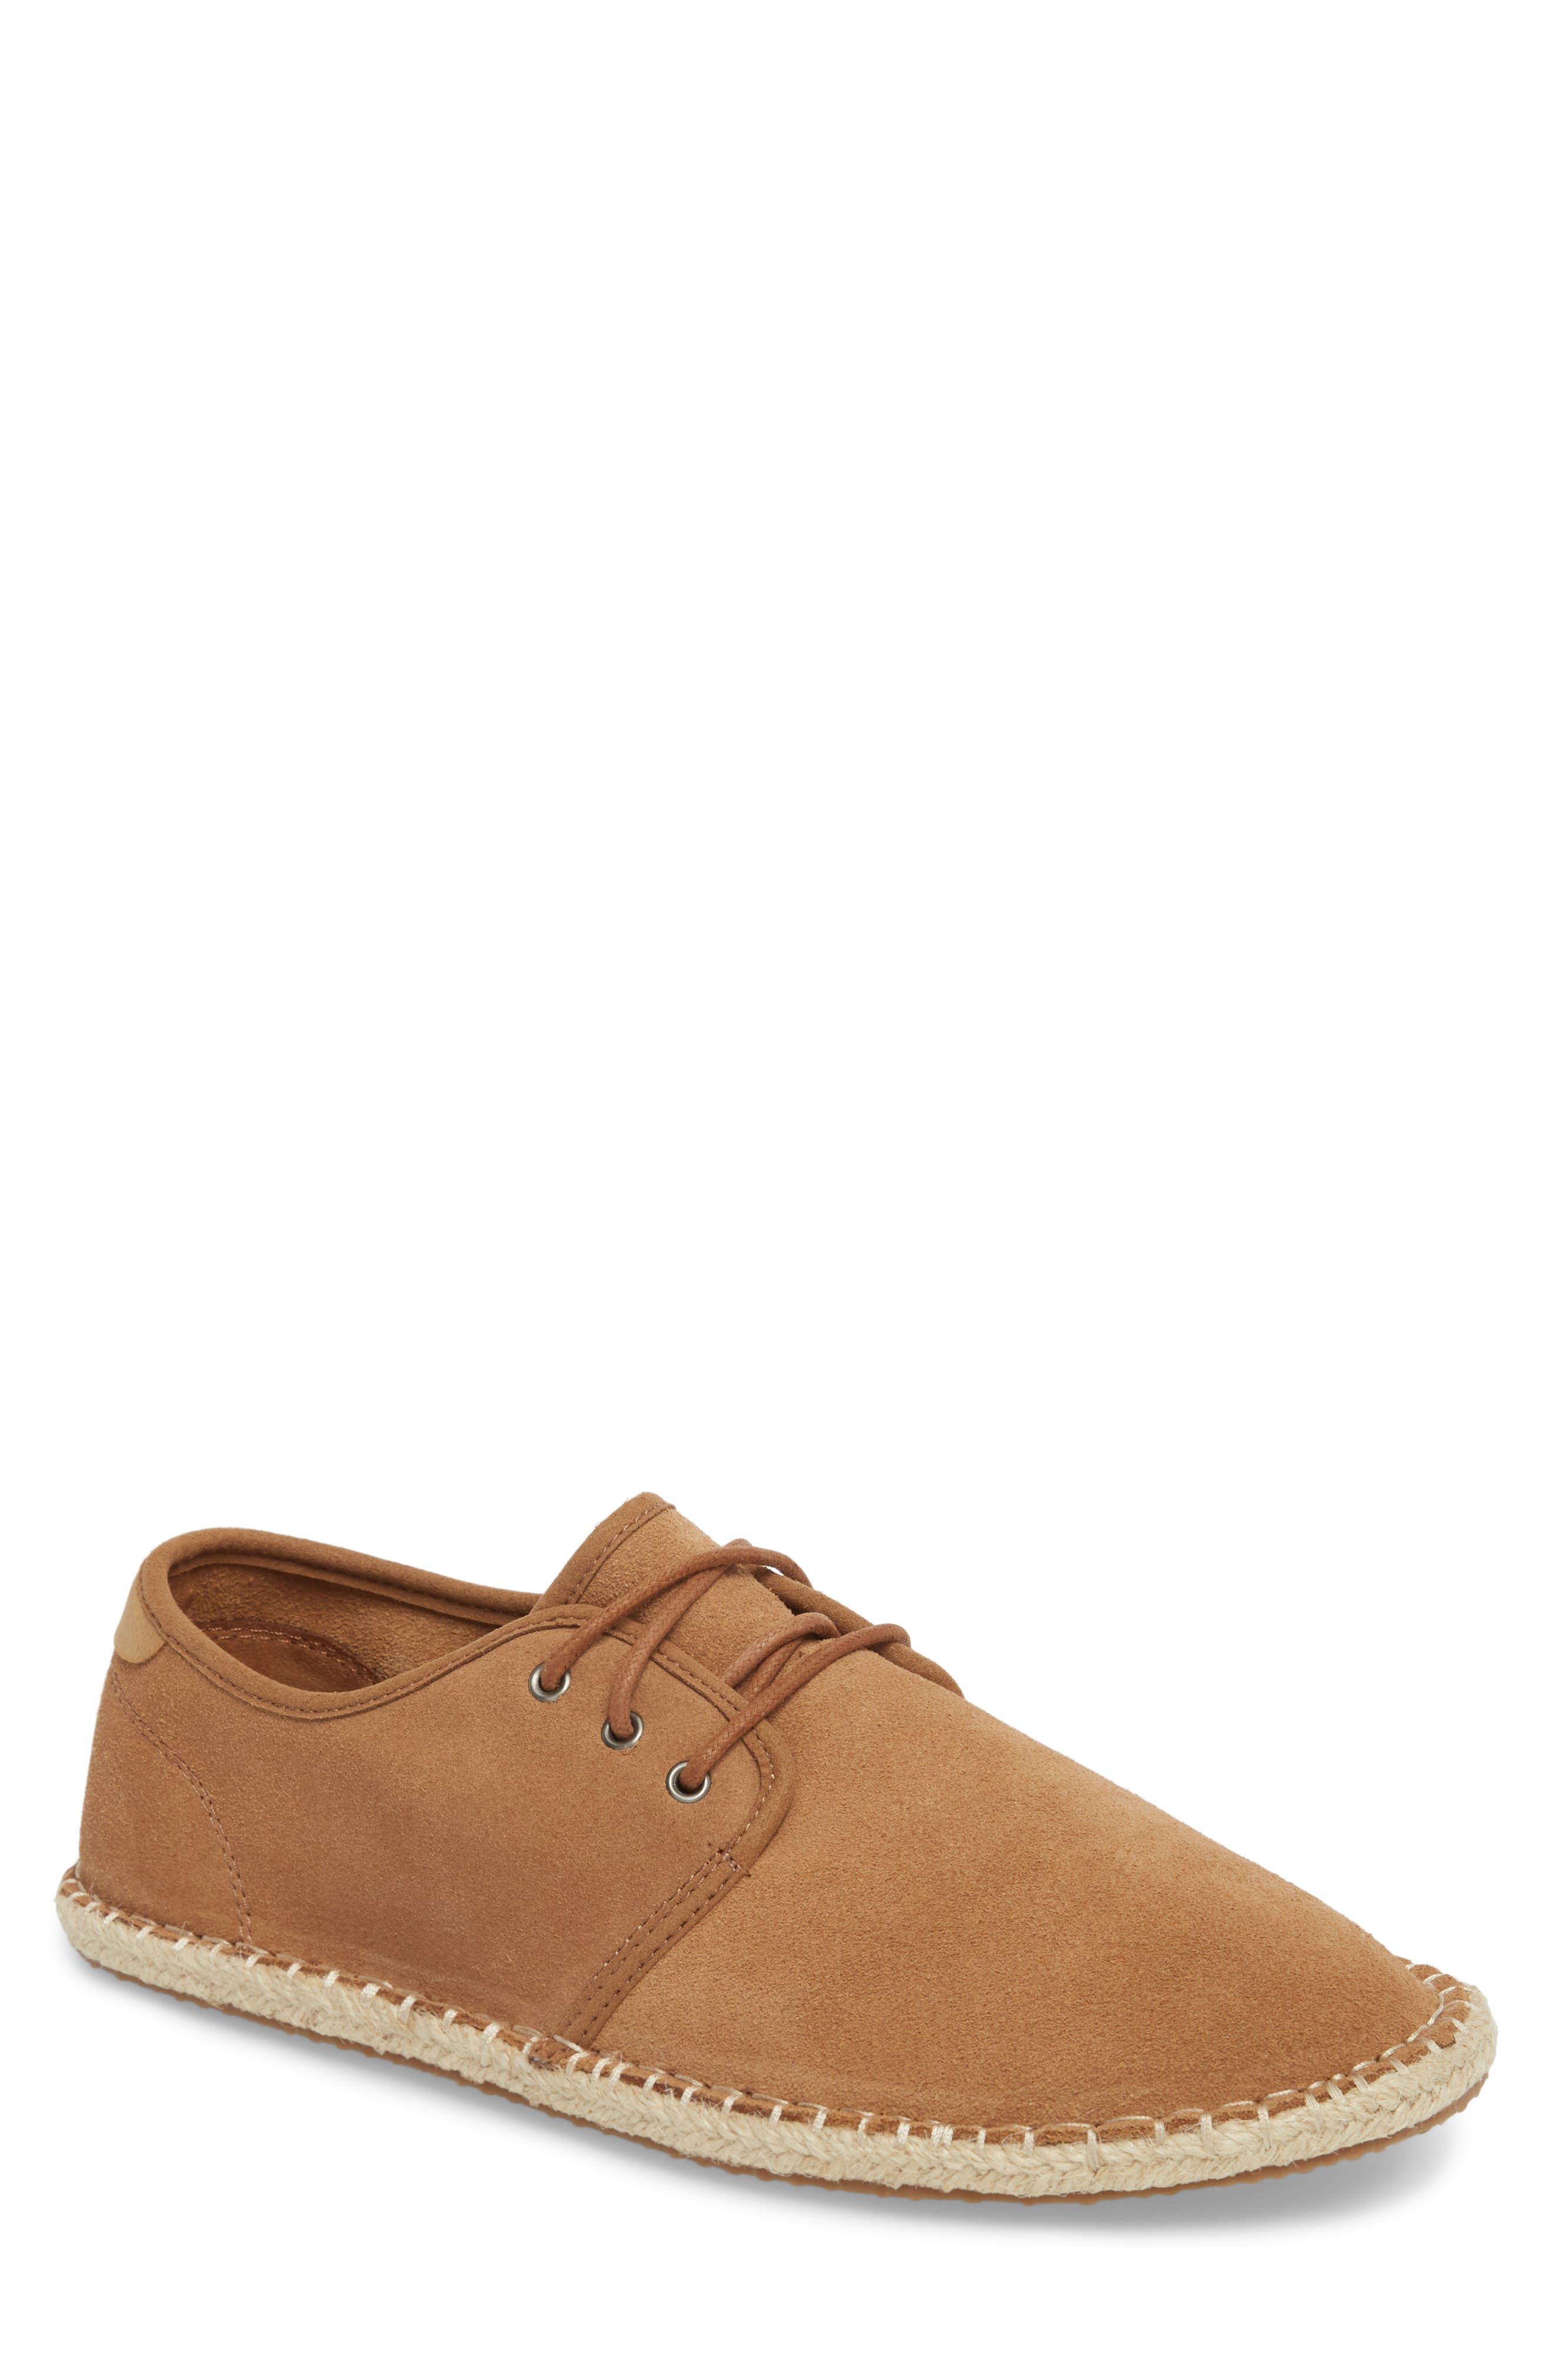 Diego Deconstructed Derby,                             Main thumbnail 1, color,                             Toffee Suede